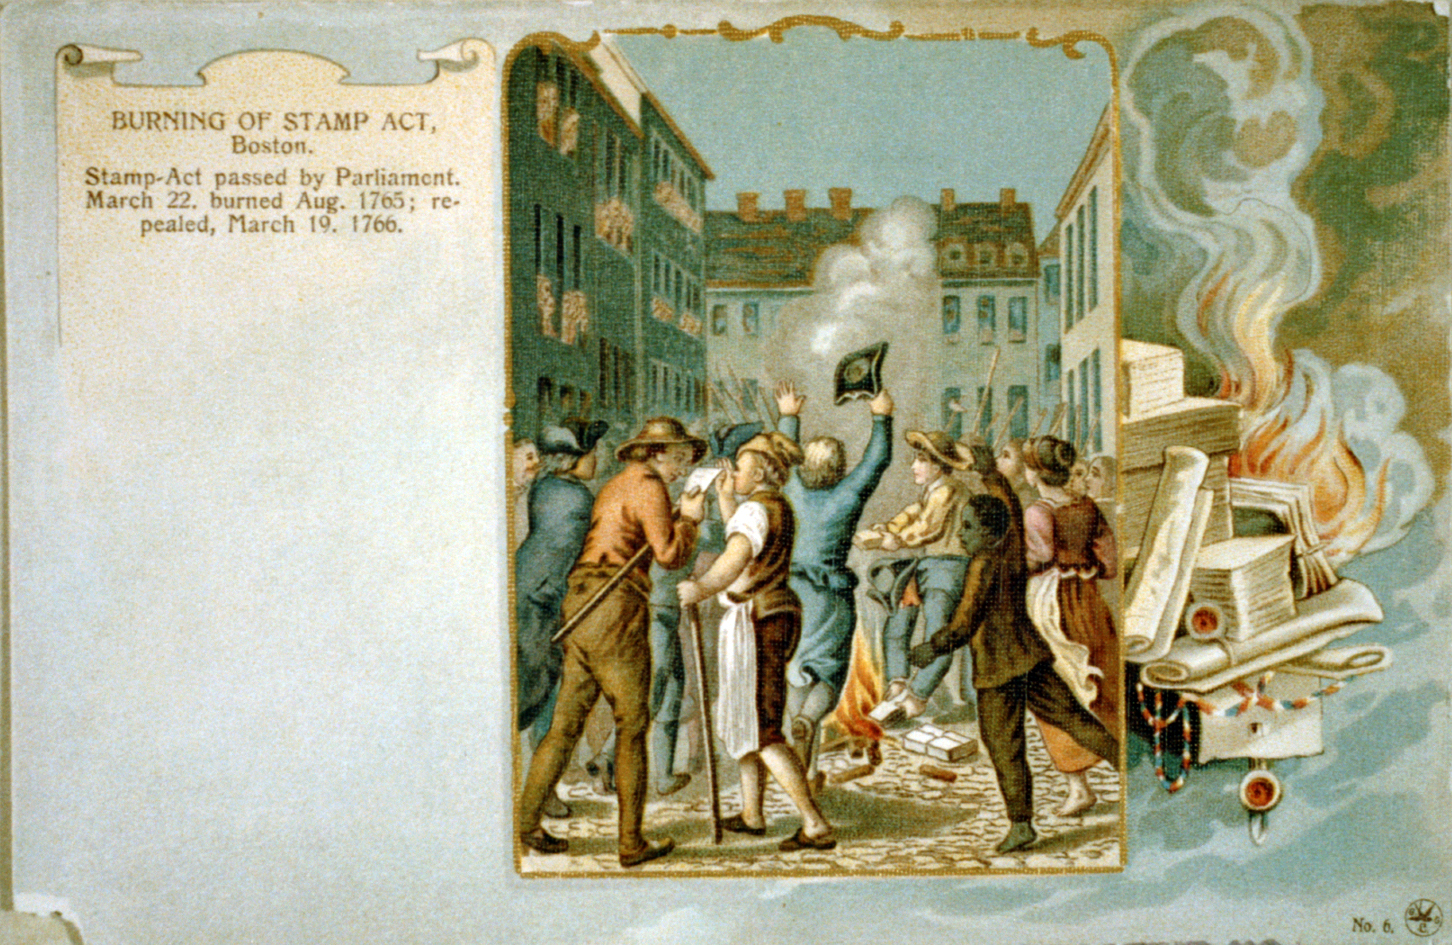 Burning of Stamp Act,  Postcard created 1902